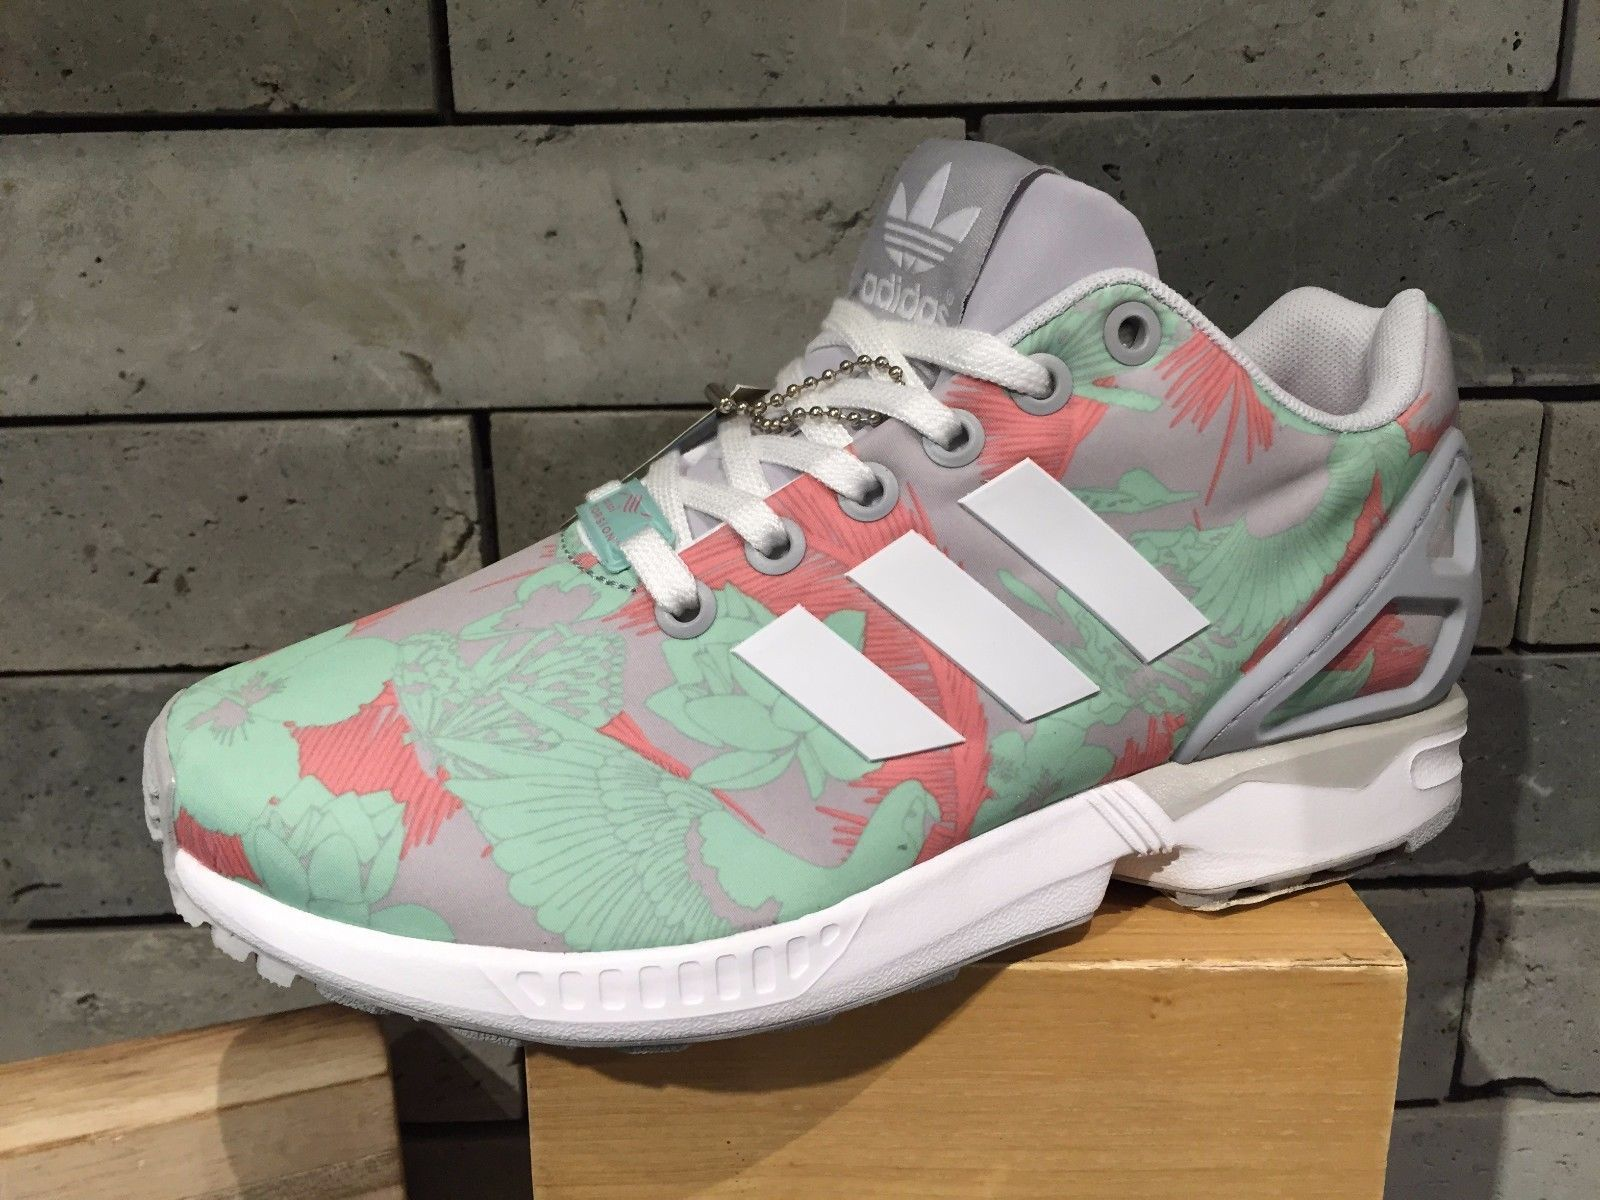 Adidas Originals ZX Flux W Grey Green Floral Print M19456 $199.00